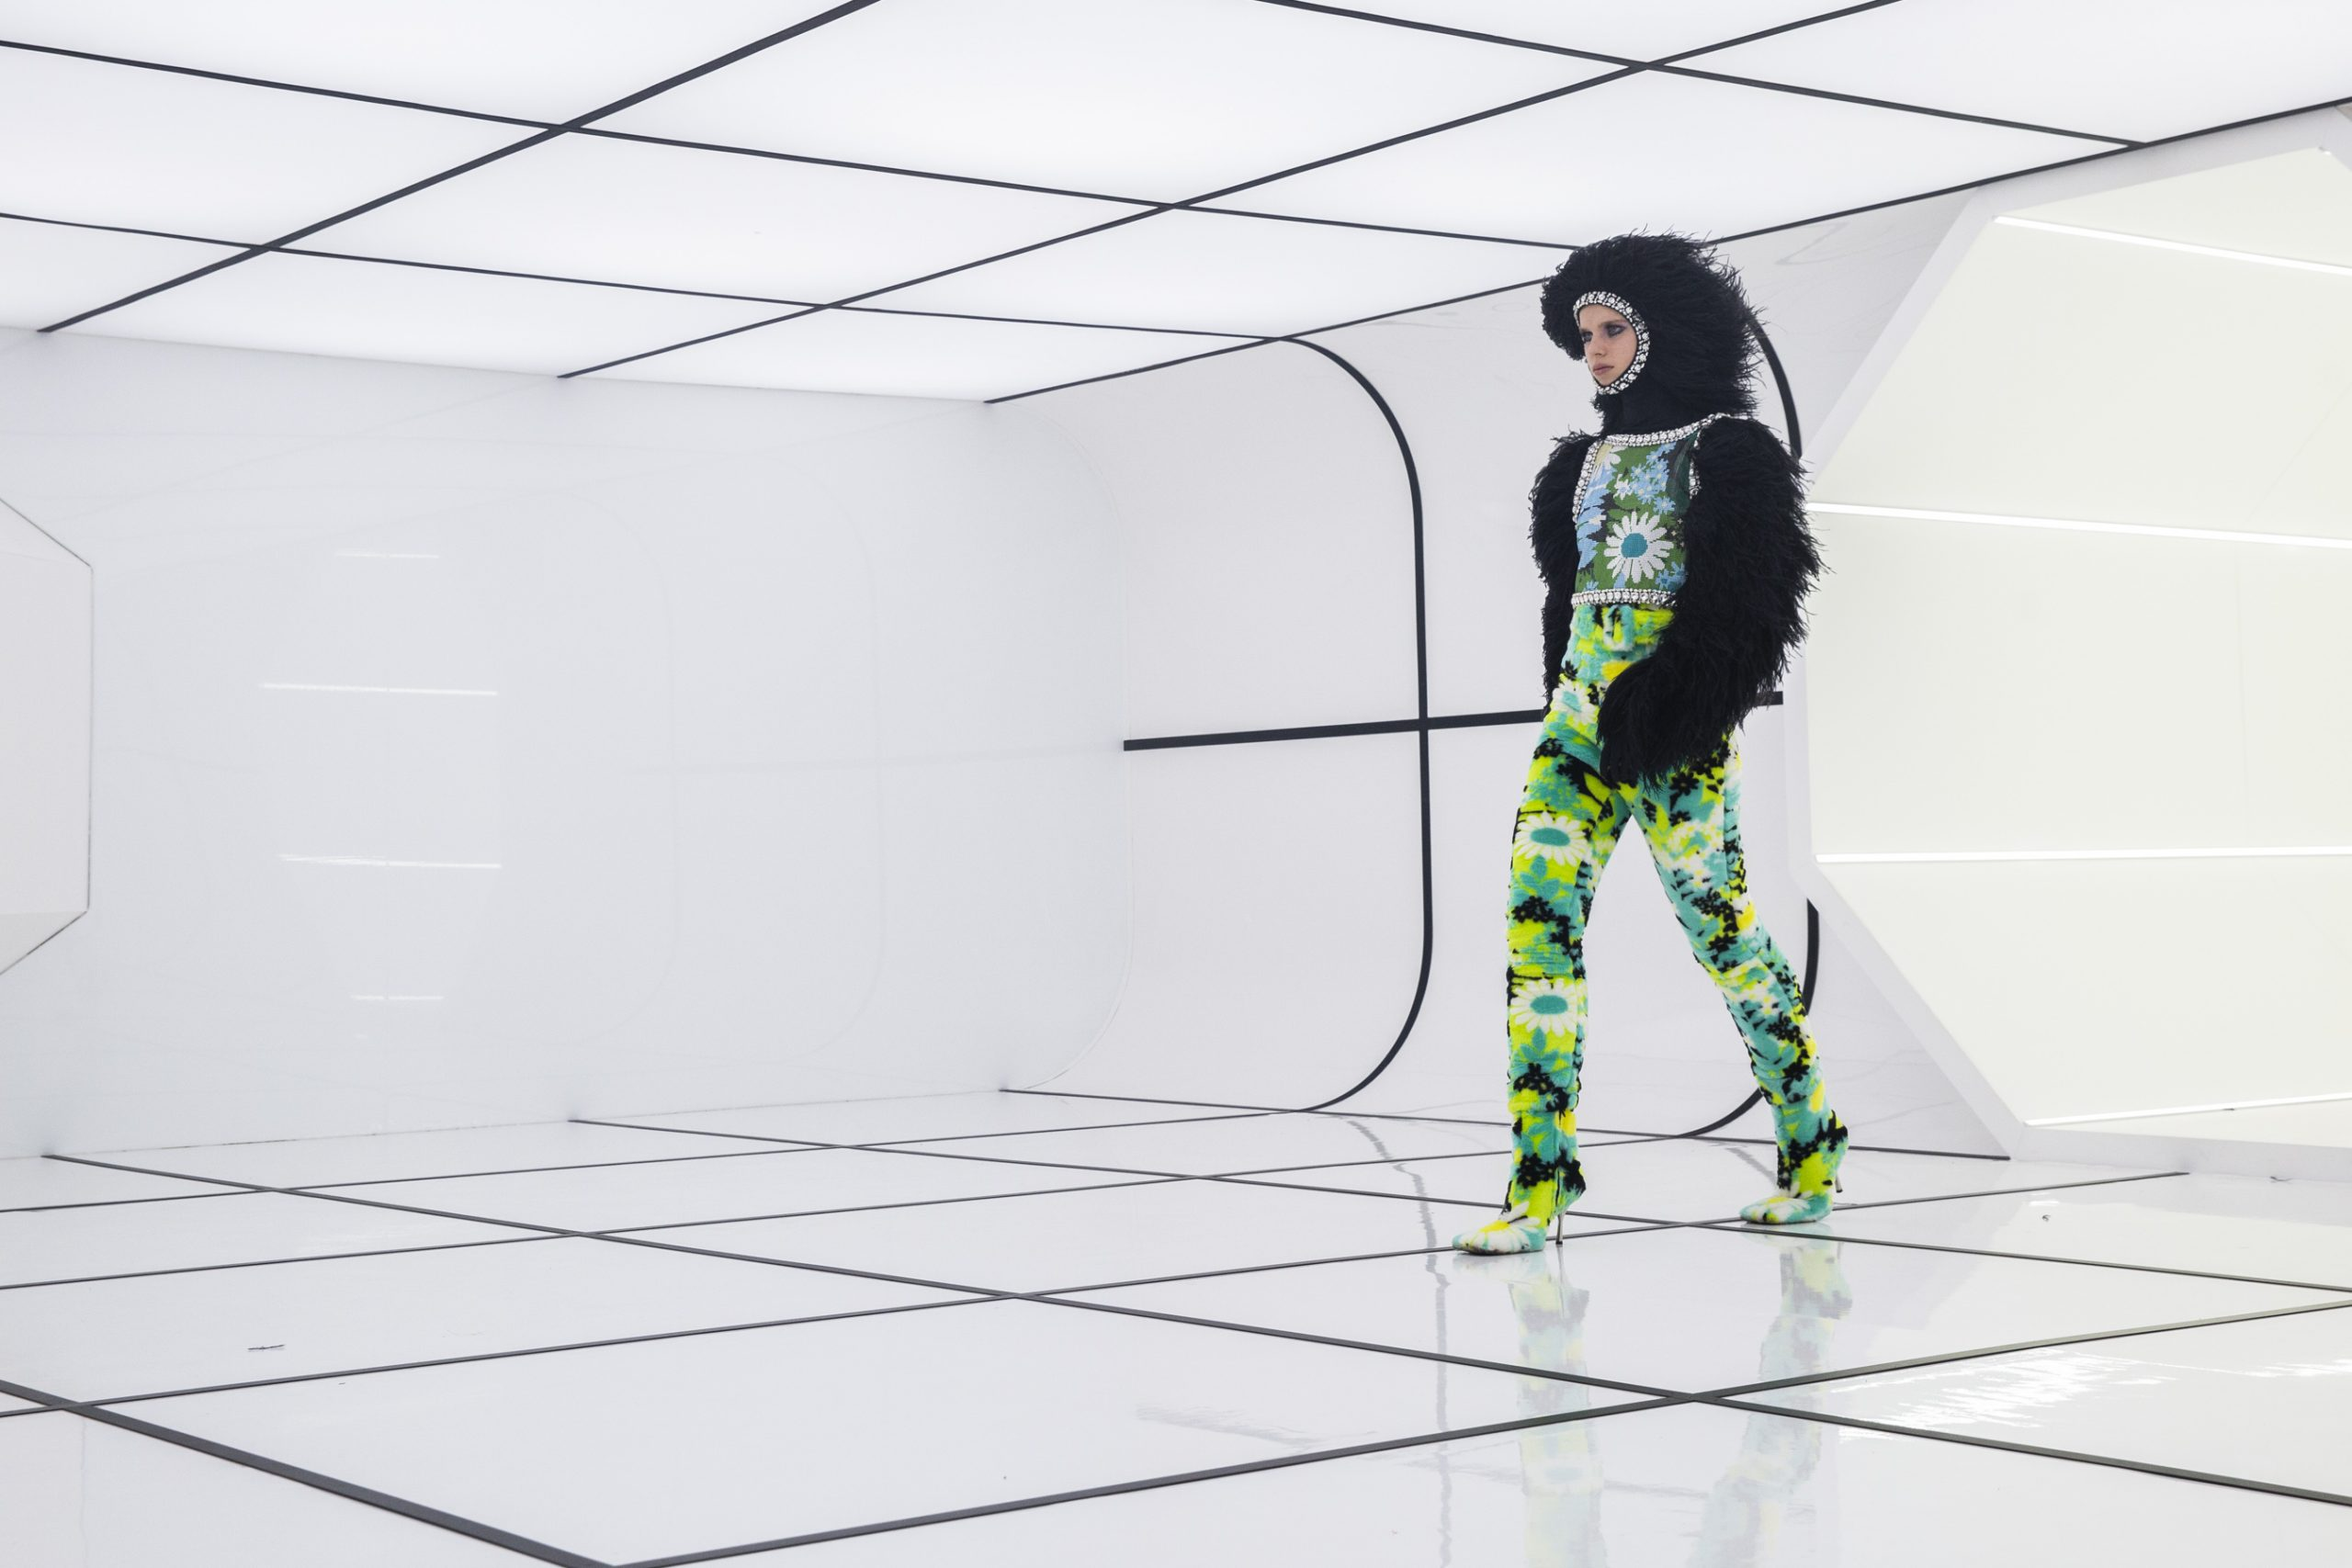 Moncler Genius Show Moving To China In 2021